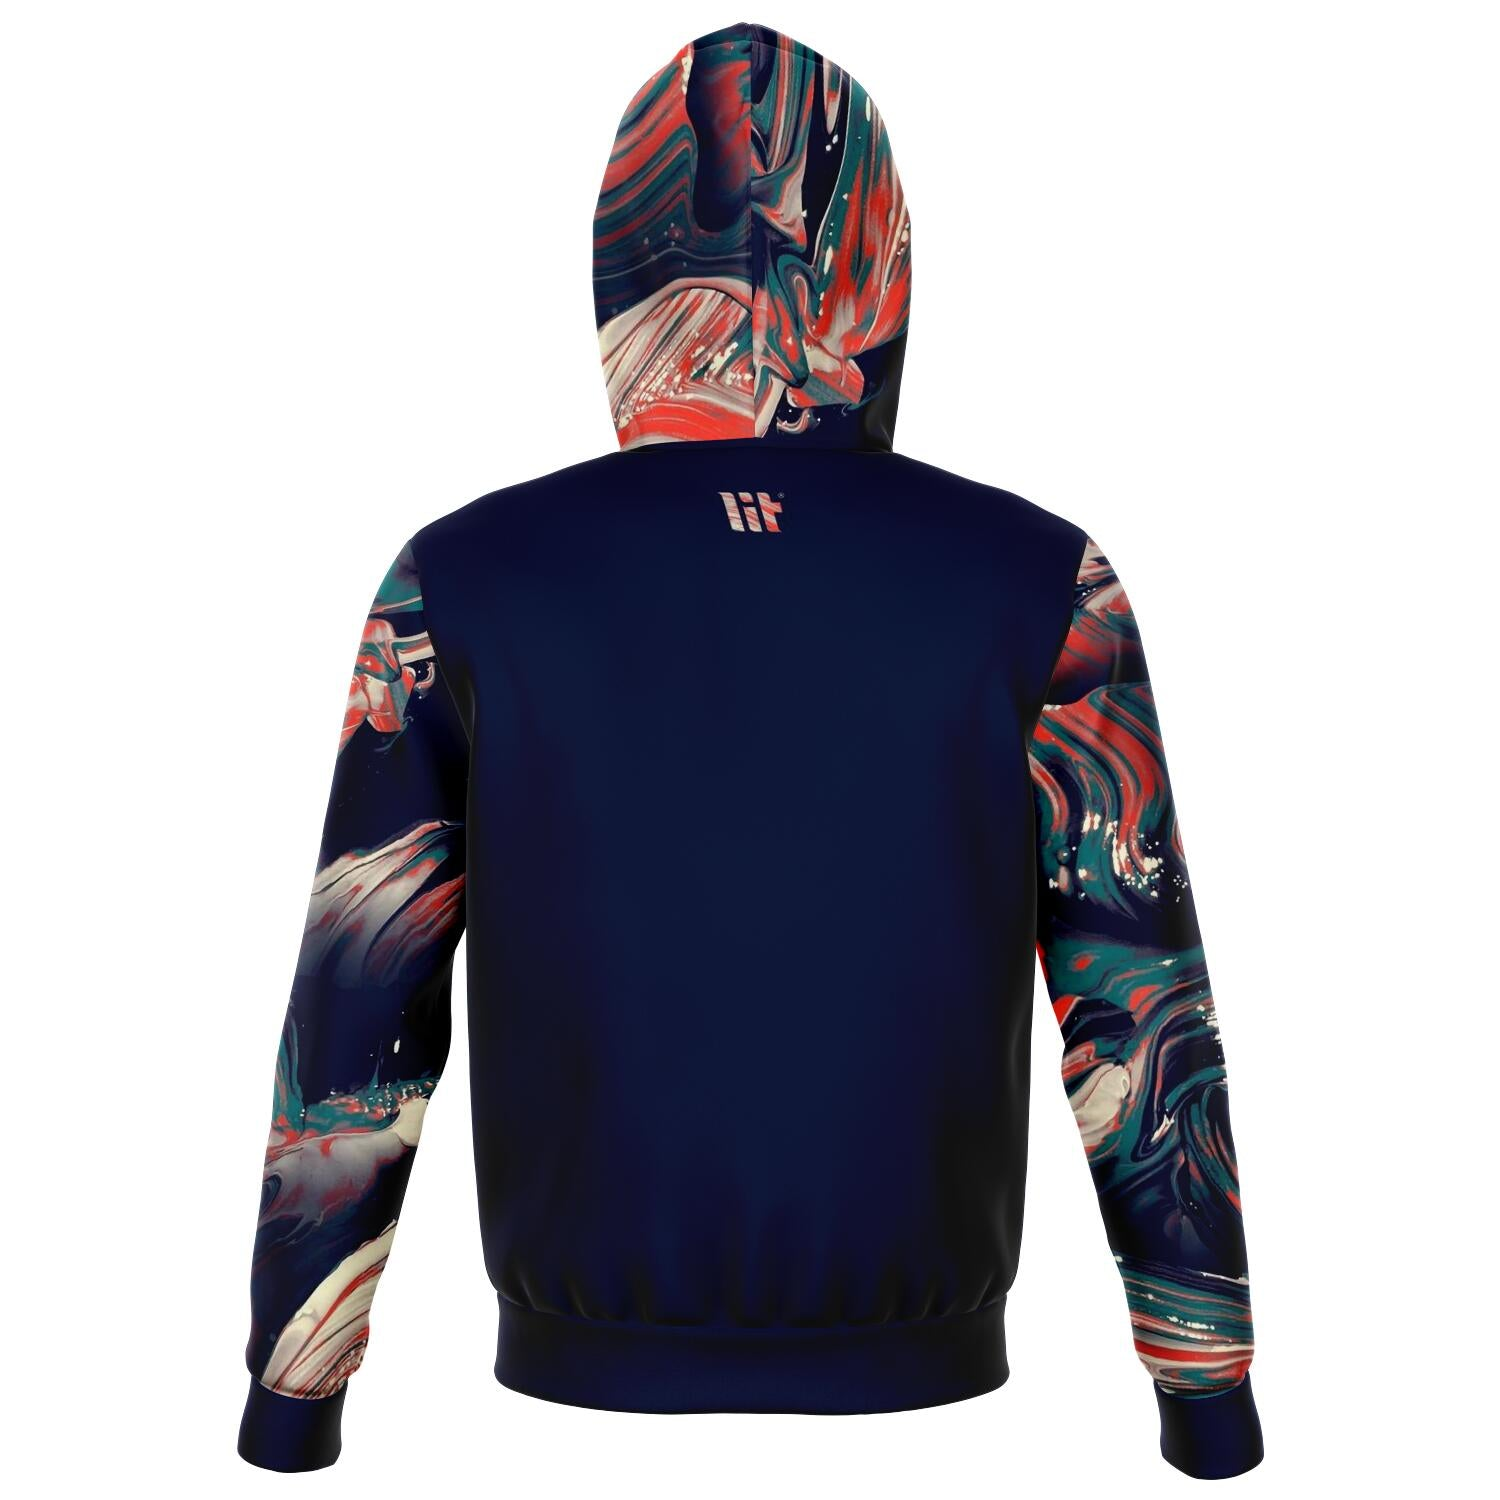 Cortistatin all over print zip up hoodie unisex - front image